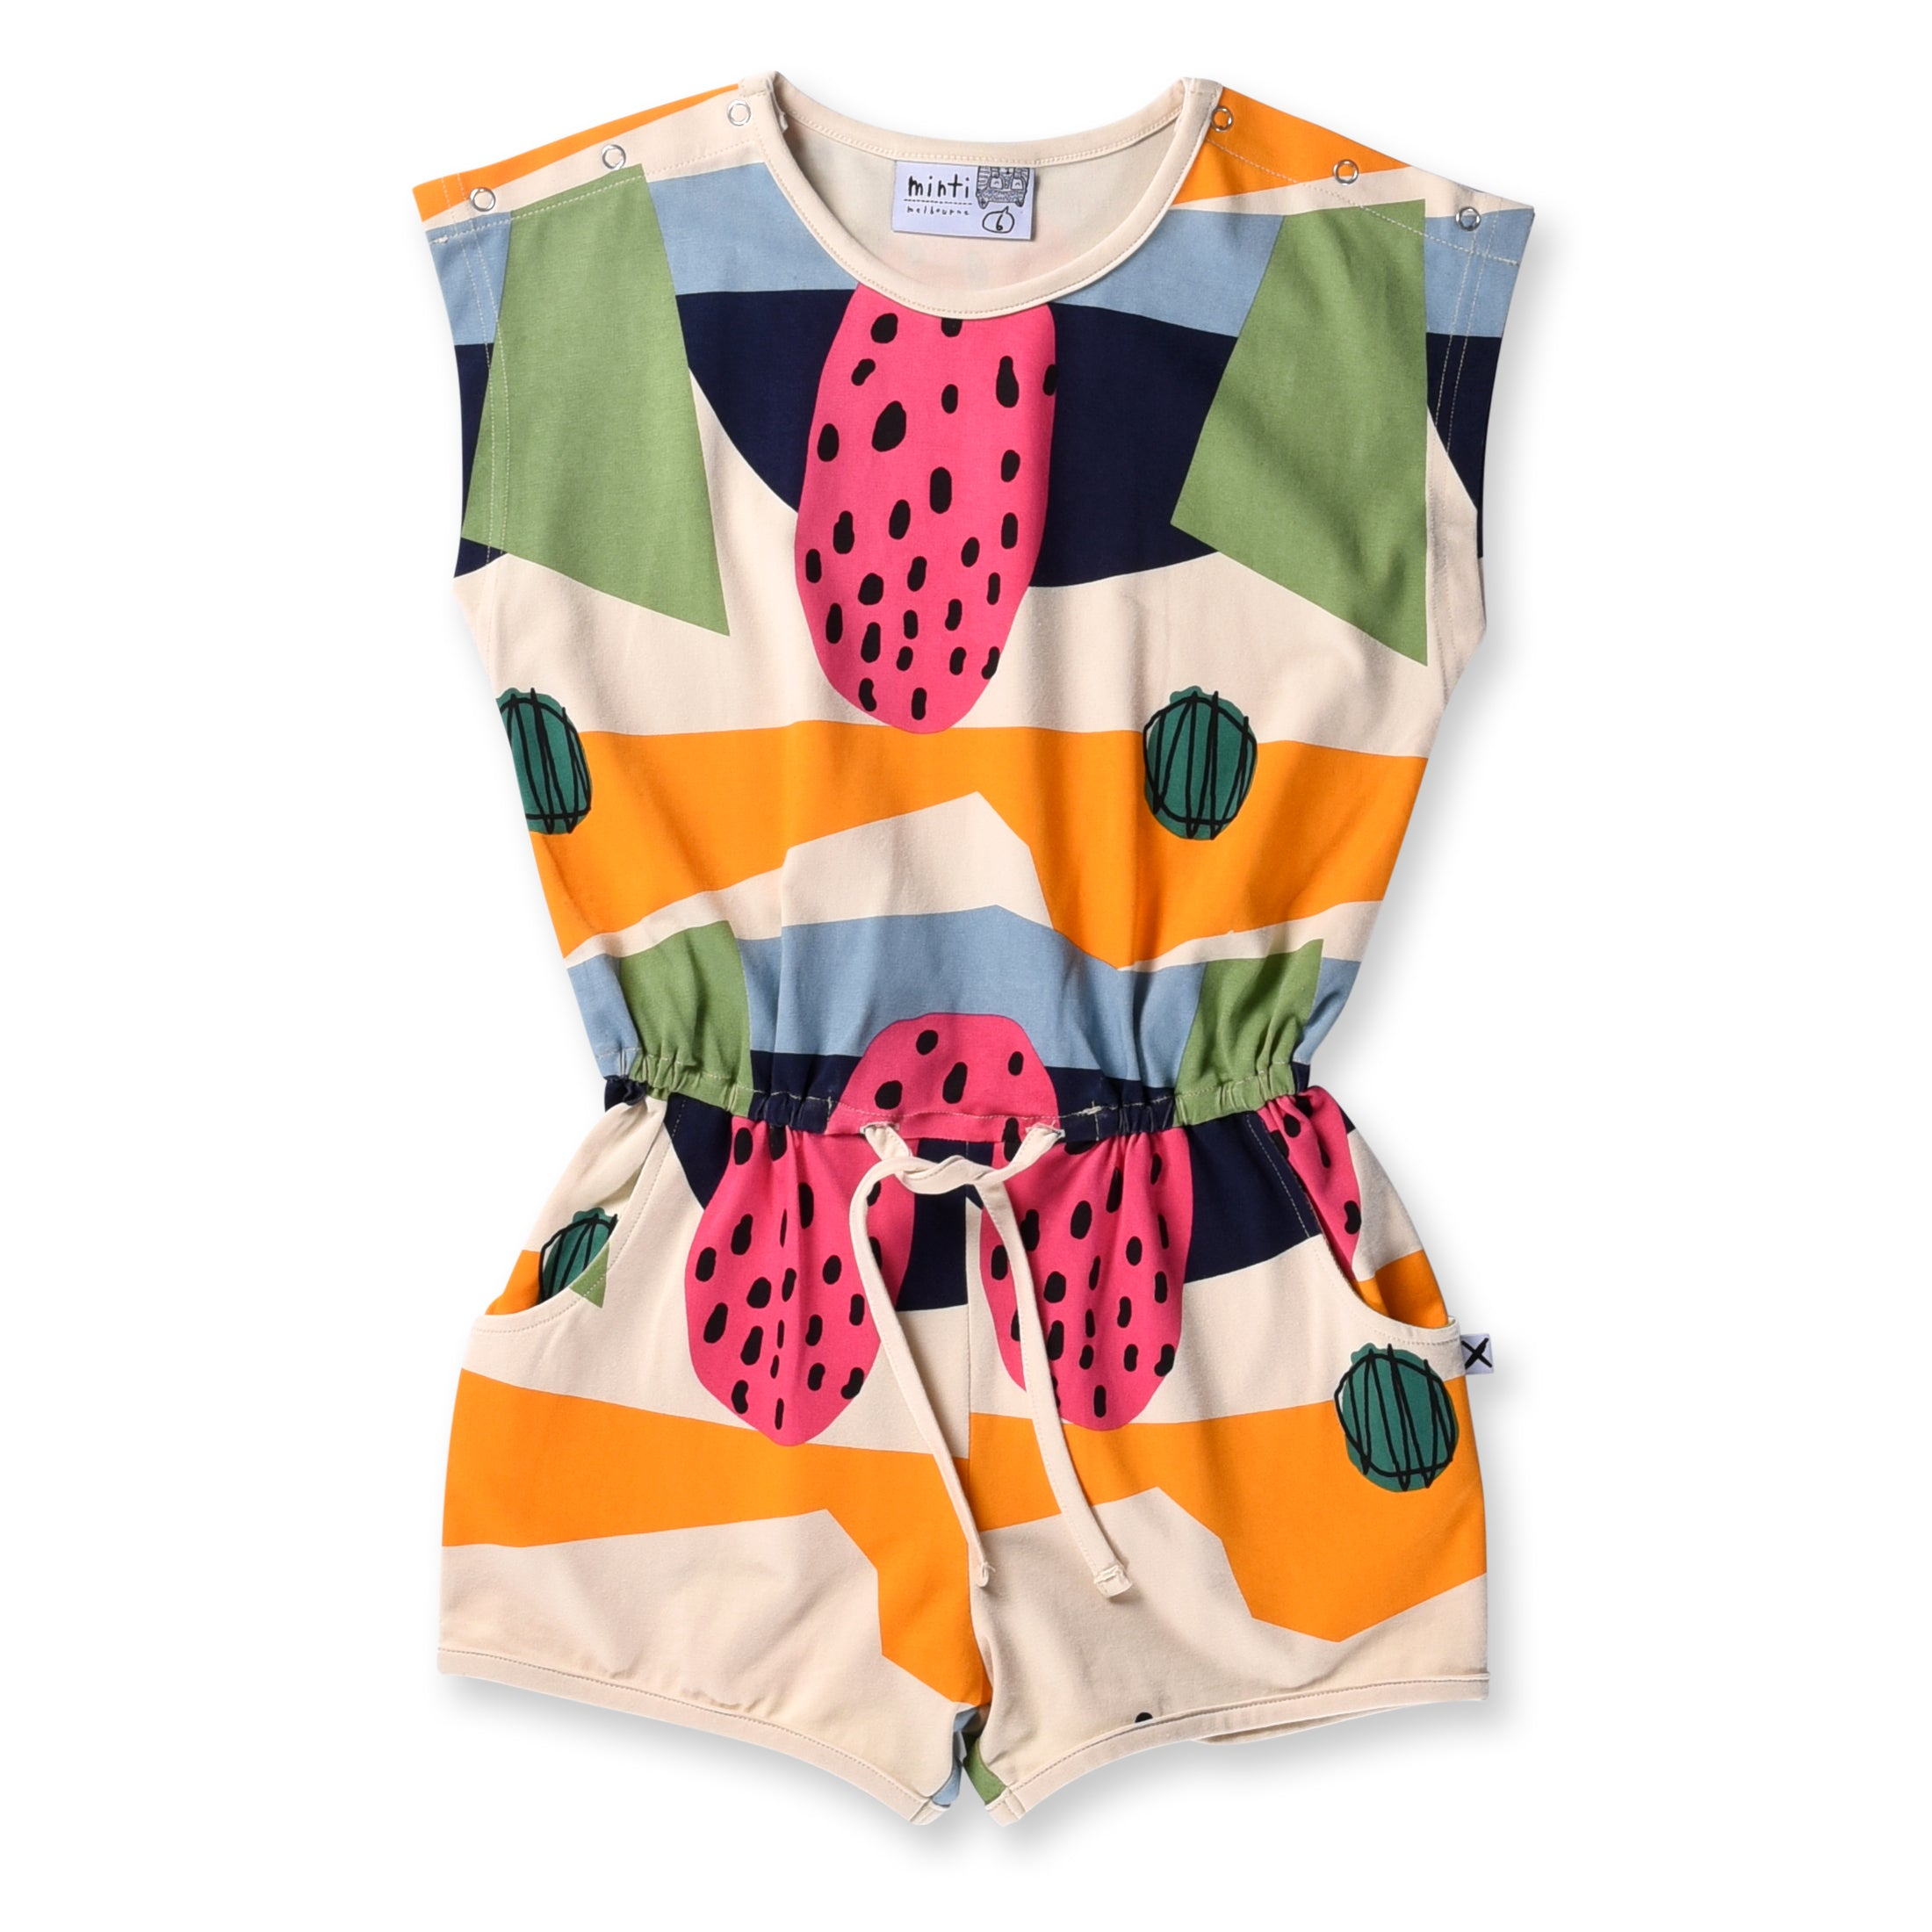 OVER 40% OFF Minti Favourite Colours Playsuit Multi LAST ONE SIZE 7